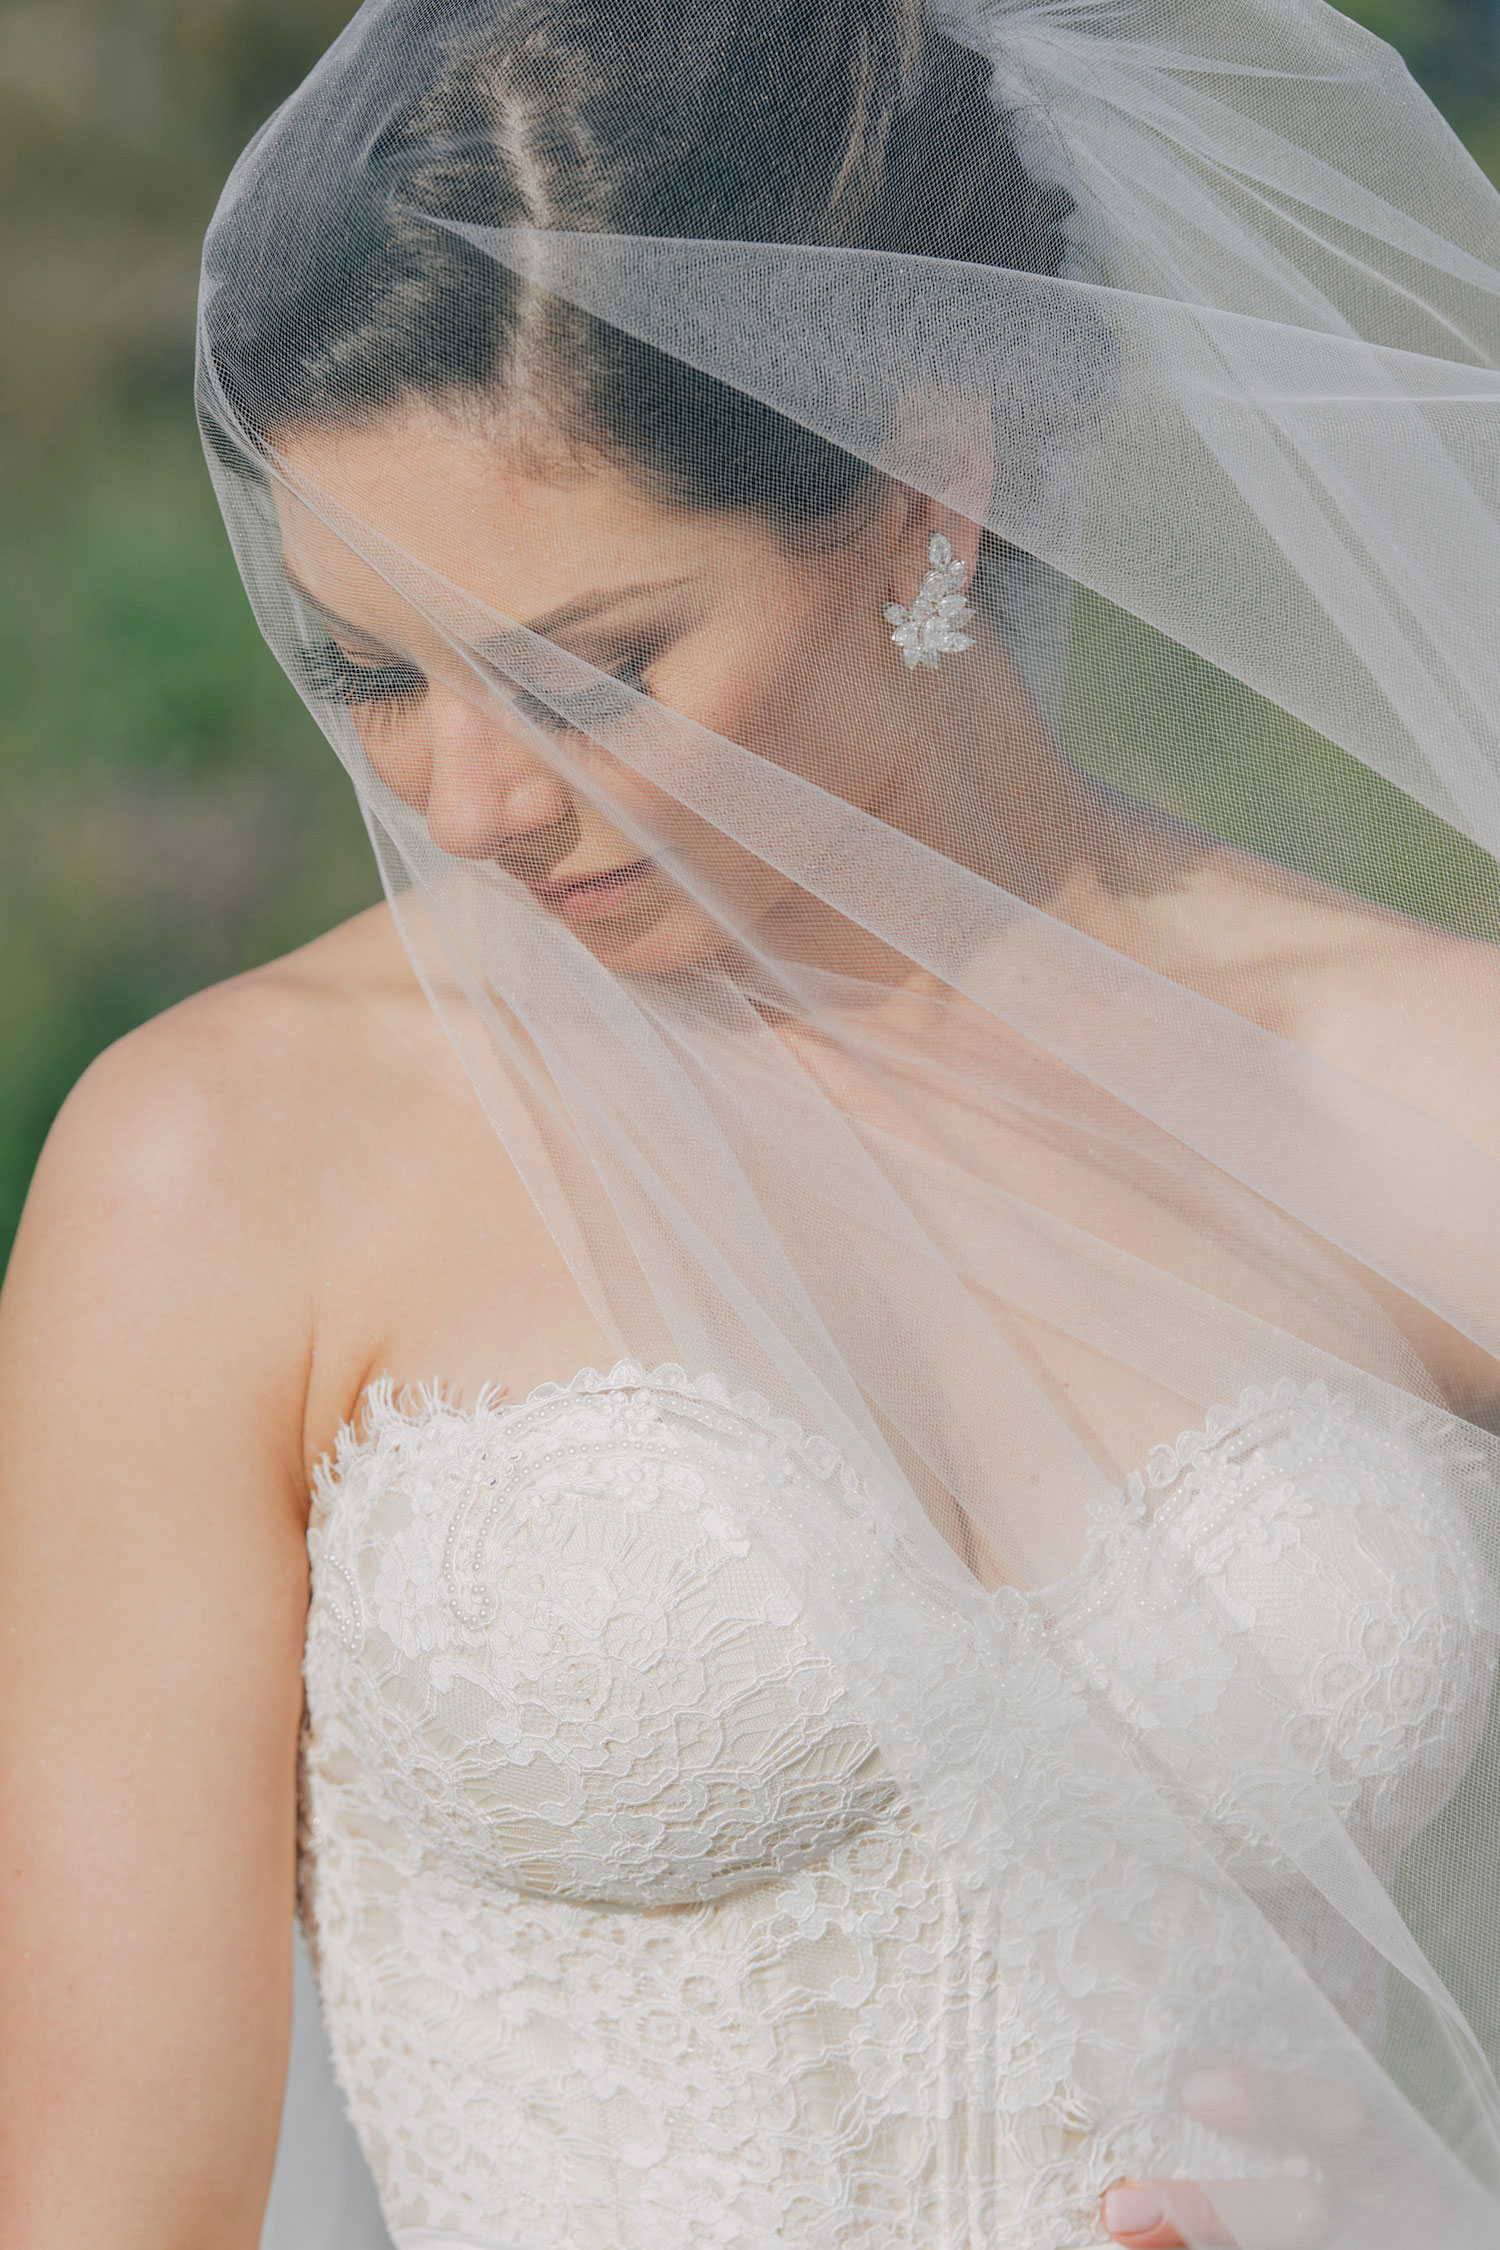 Nick Carter bride behind wedding veil